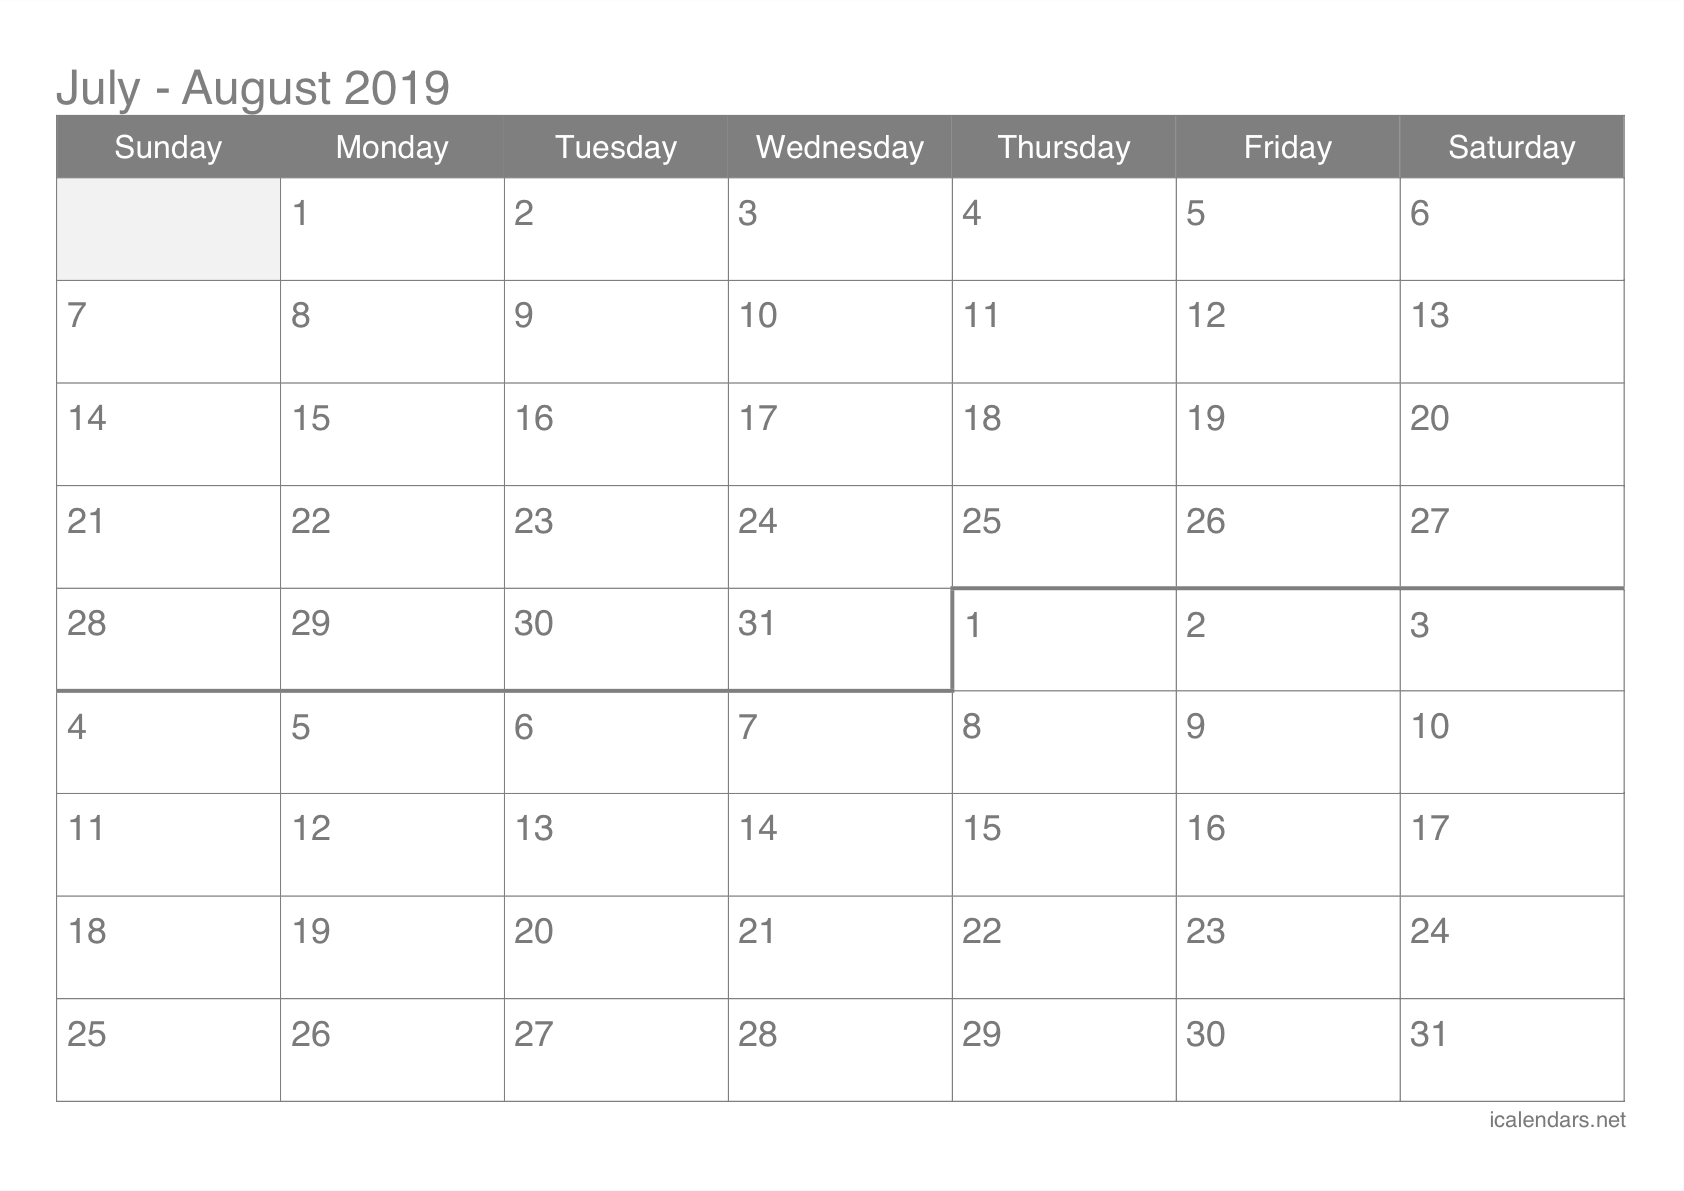 July And August 2019 Printable Calendar - Icalendars regarding Printable Blank Calendar July And August